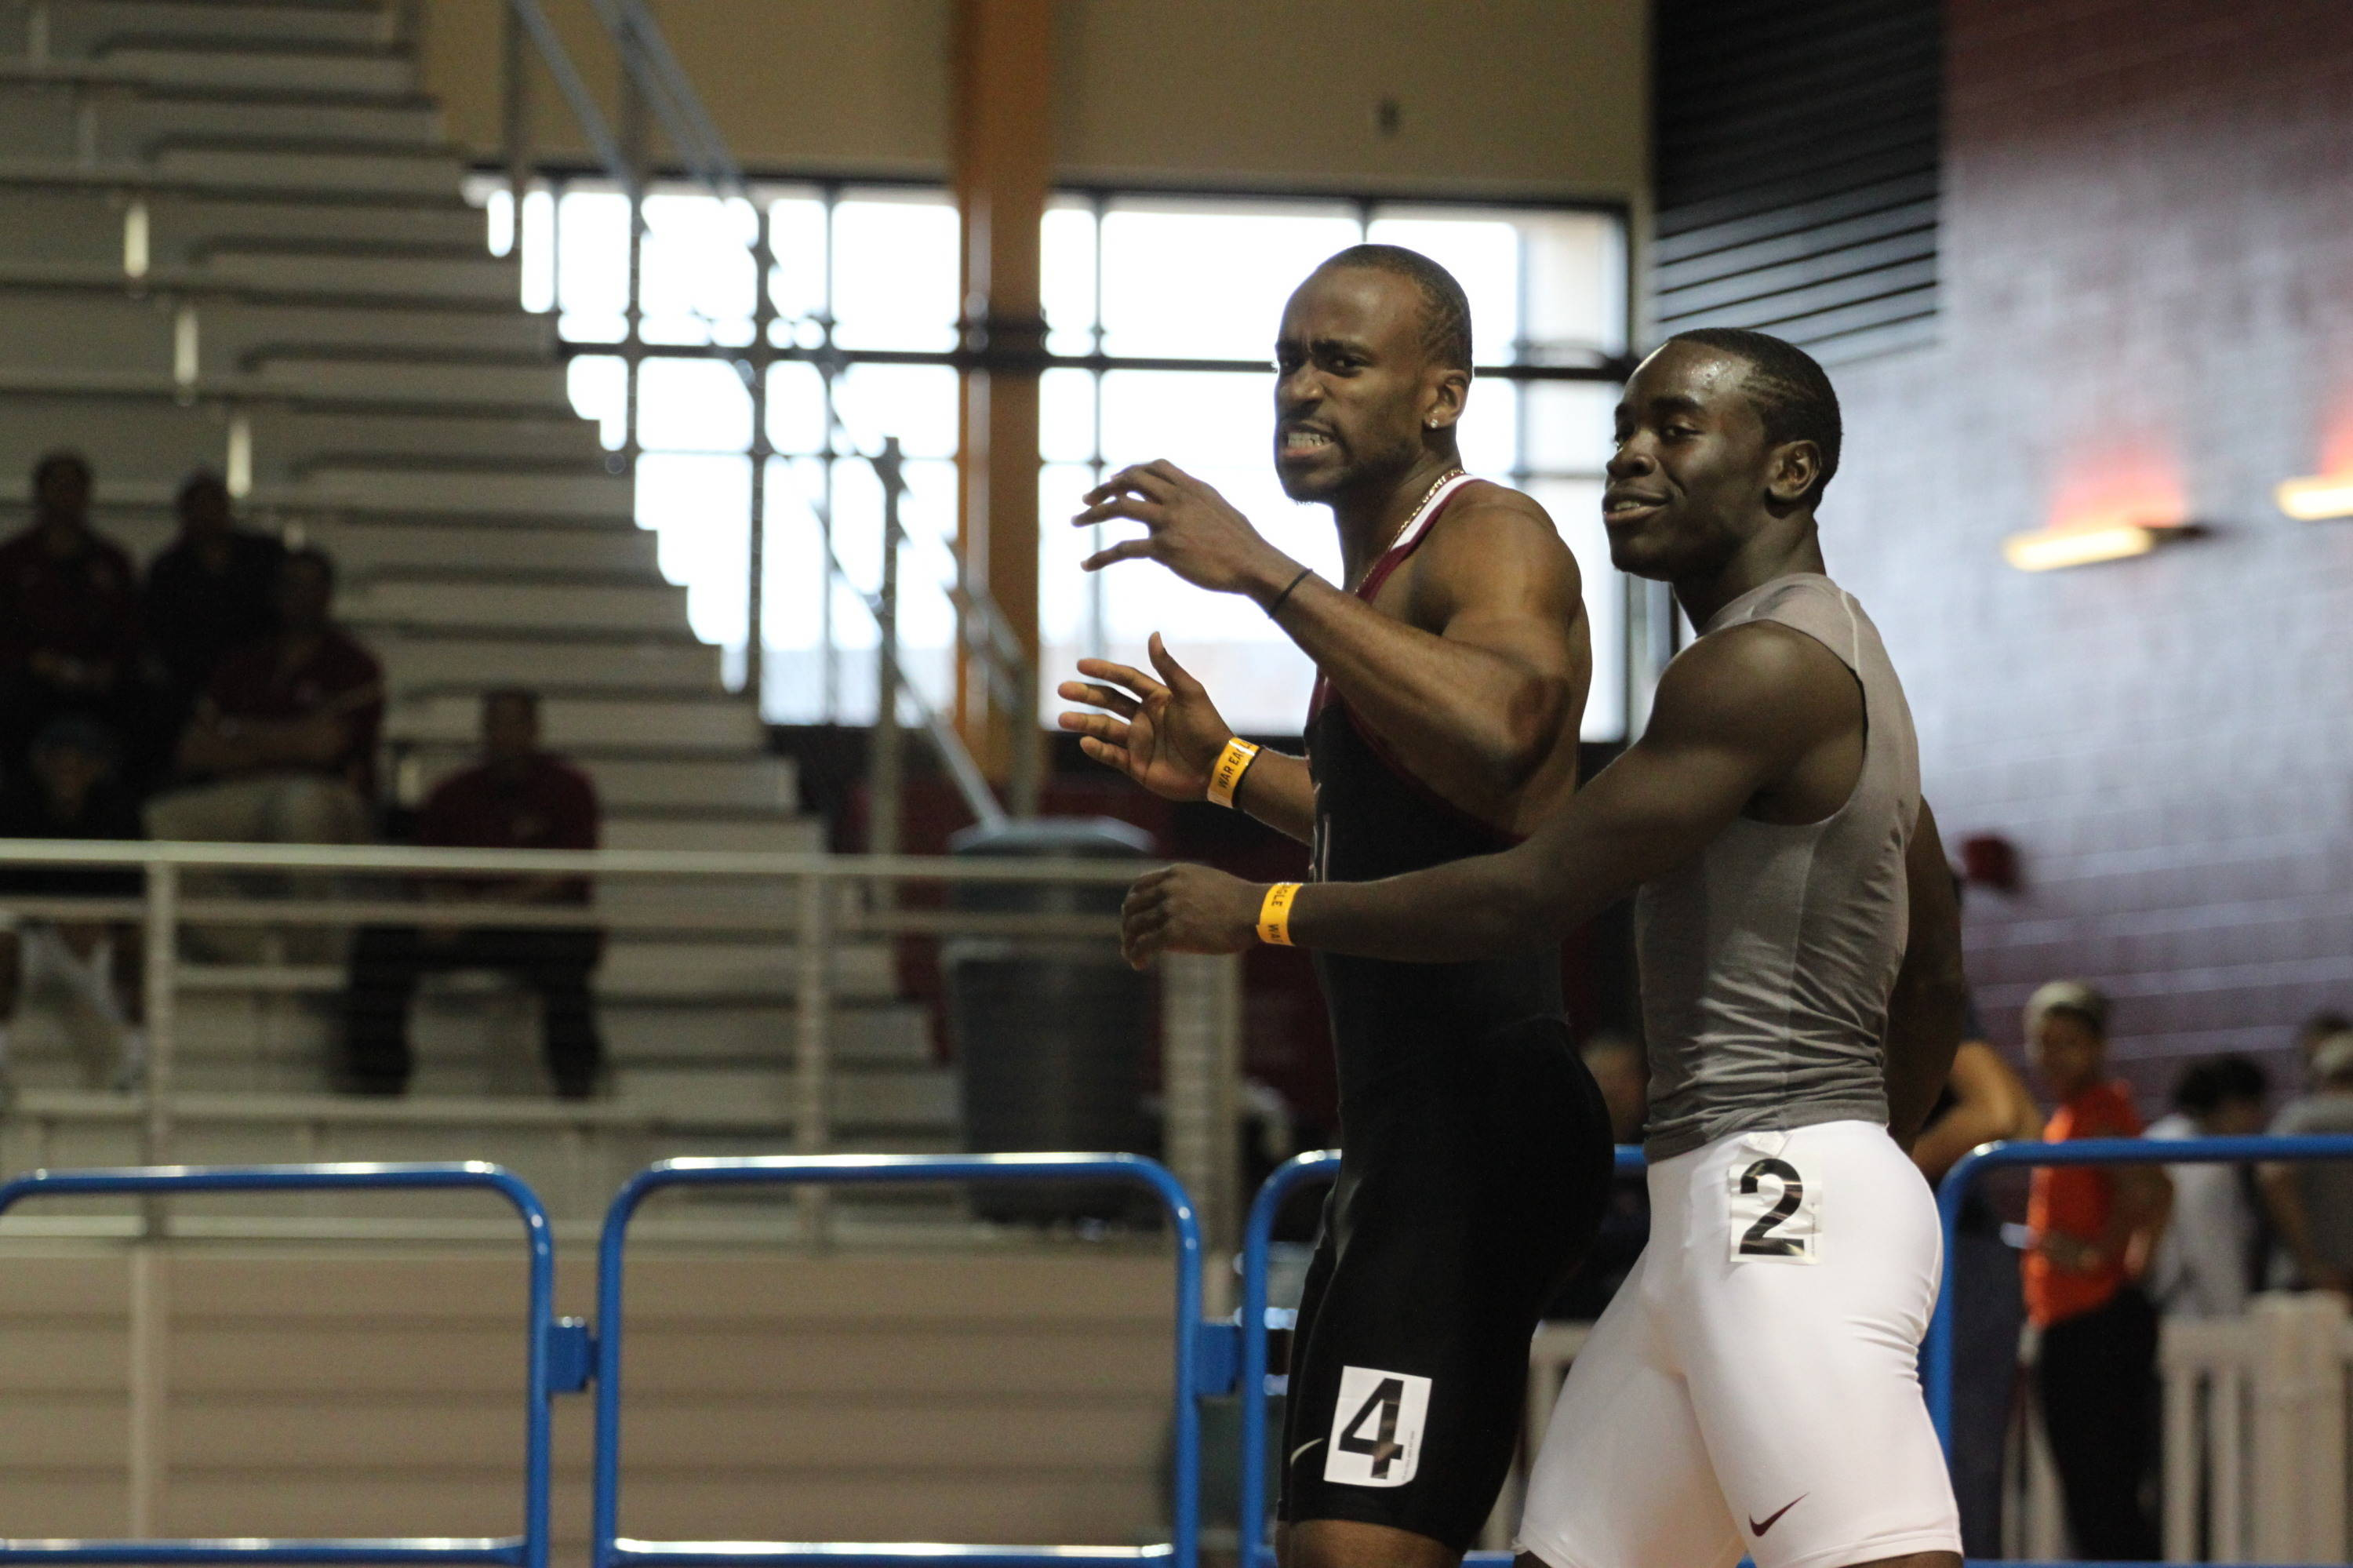 Kemar Hyman and Dentarius Locke, an FSU student who ran unattached and finished fourth, celebrate after the 60m final.